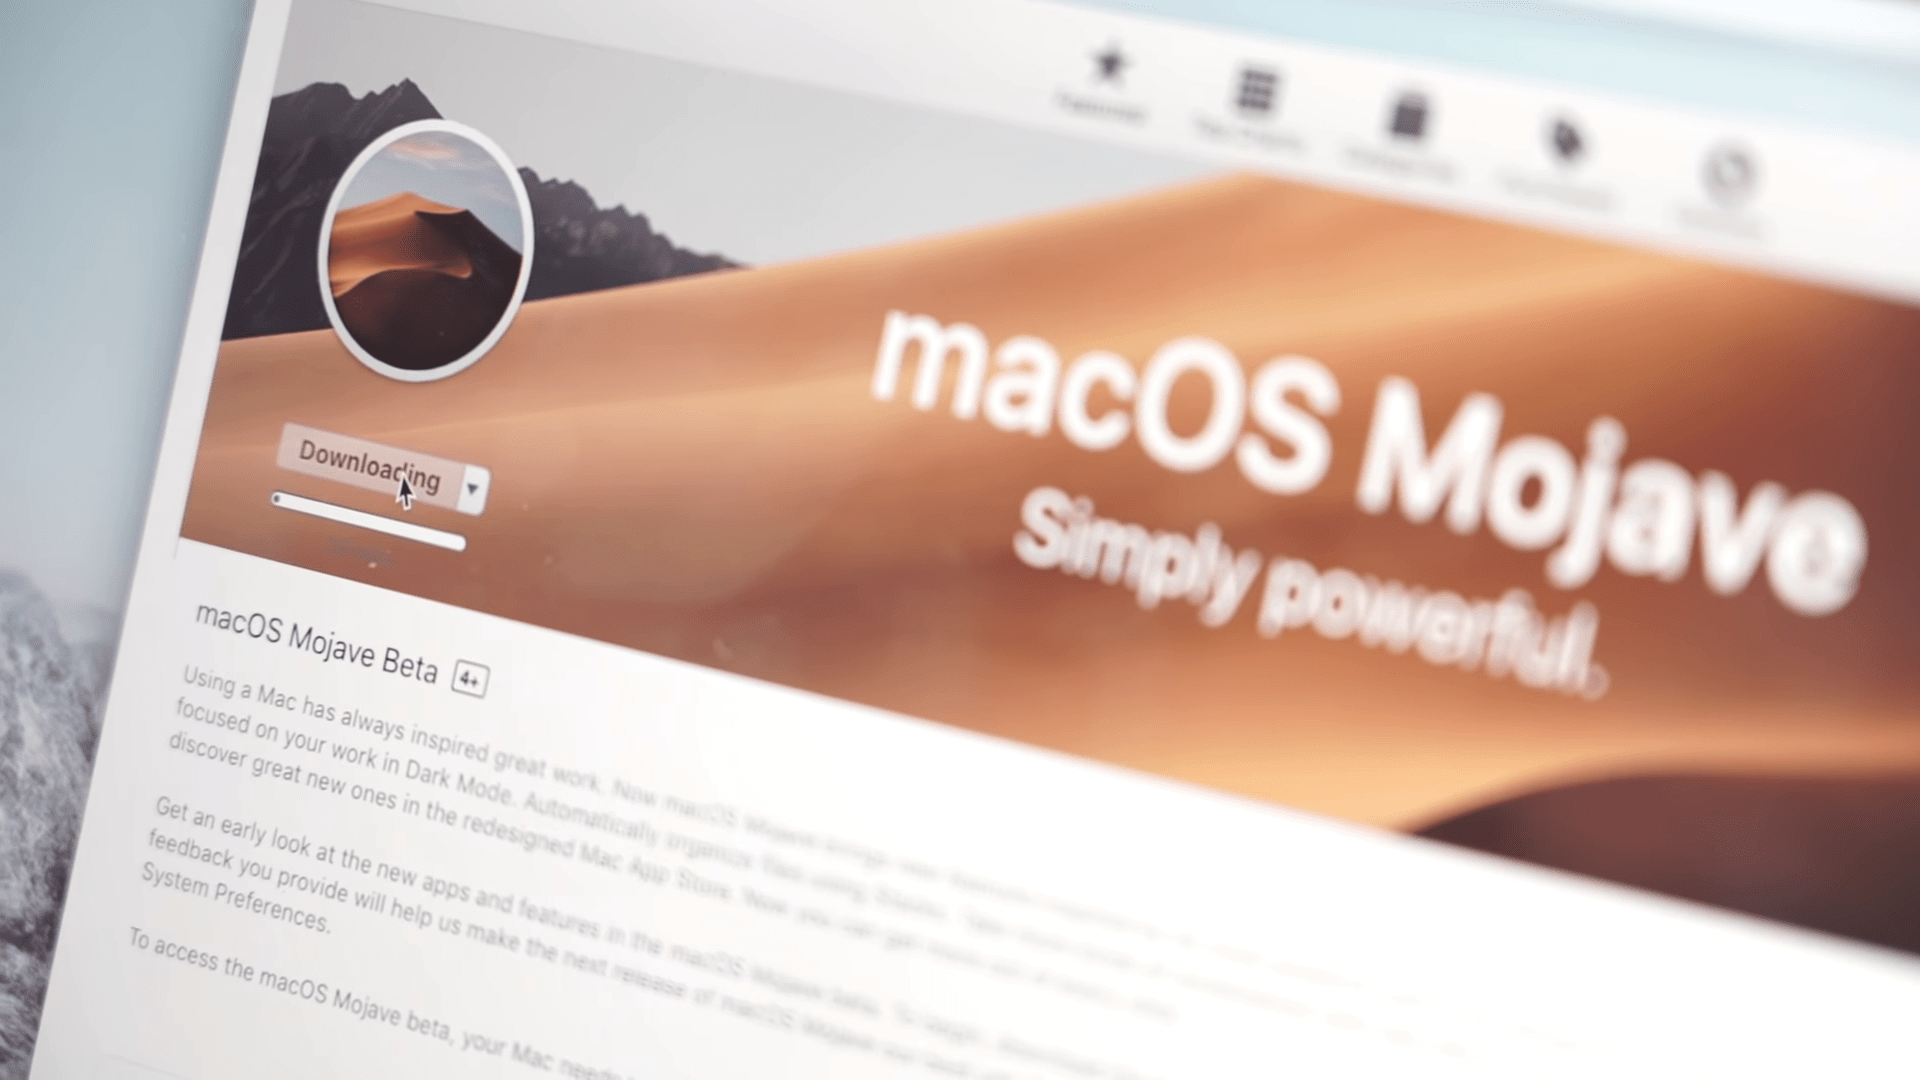 How to Download macOS Mojave VMware & VirtualBox Image on Windows